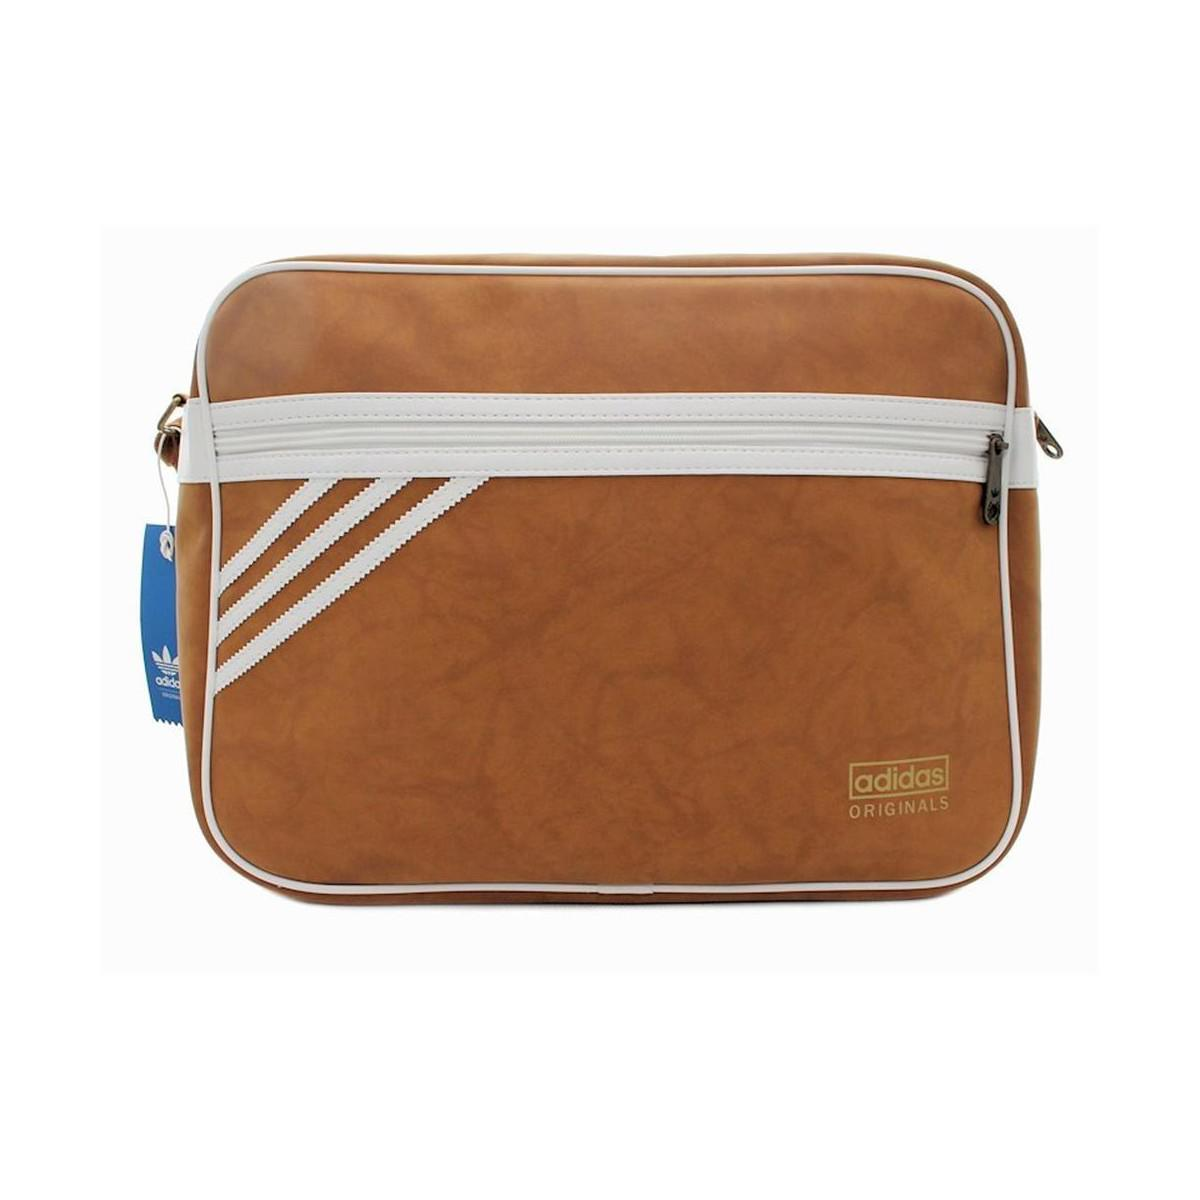 2340244d3a Adidas Airliner Suede Women s Messenger Bag In Brown in Brown - Lyst